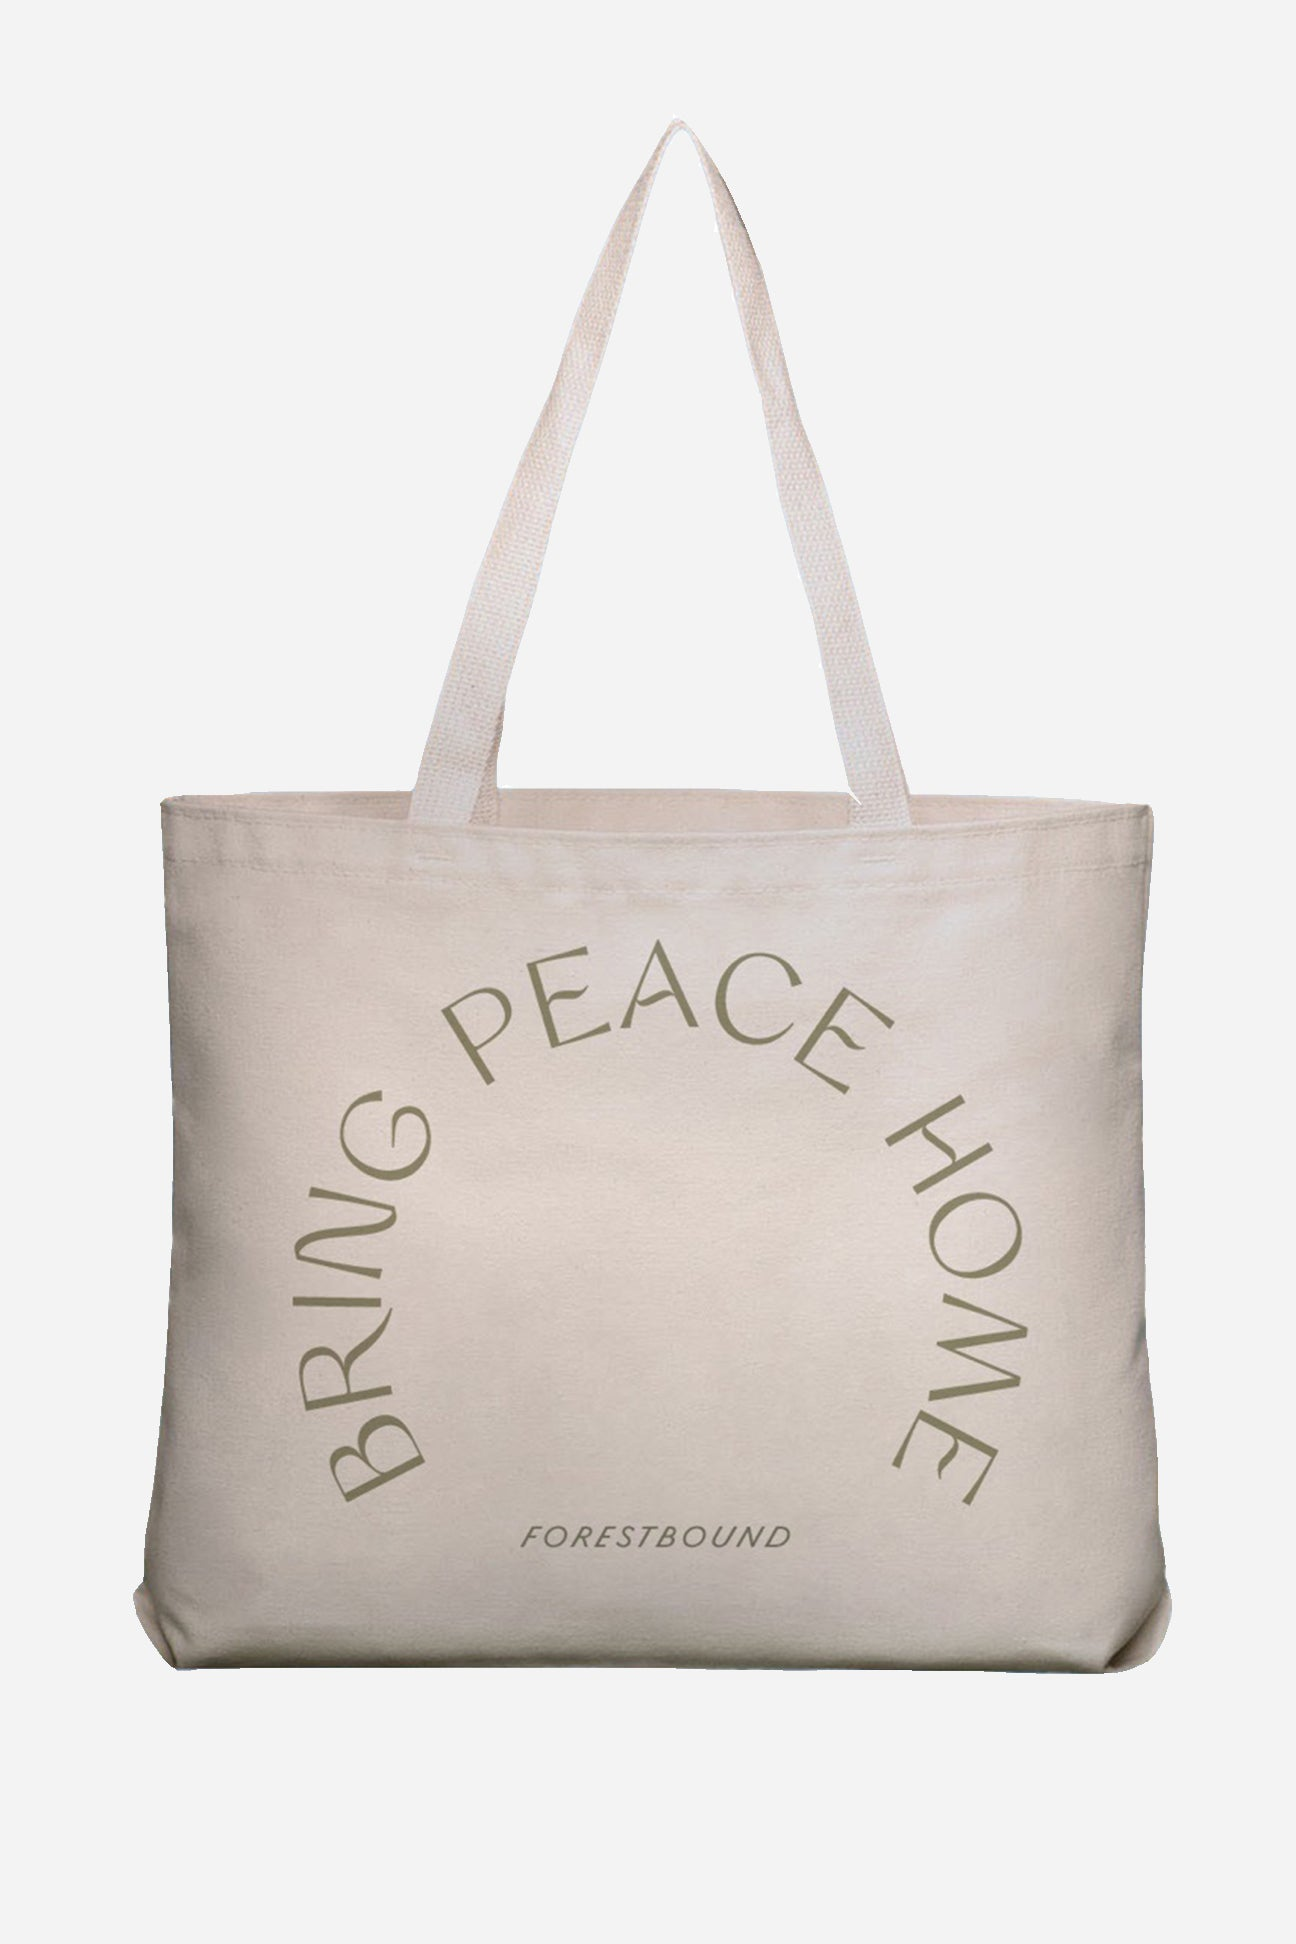 Bring Peace Home Tote